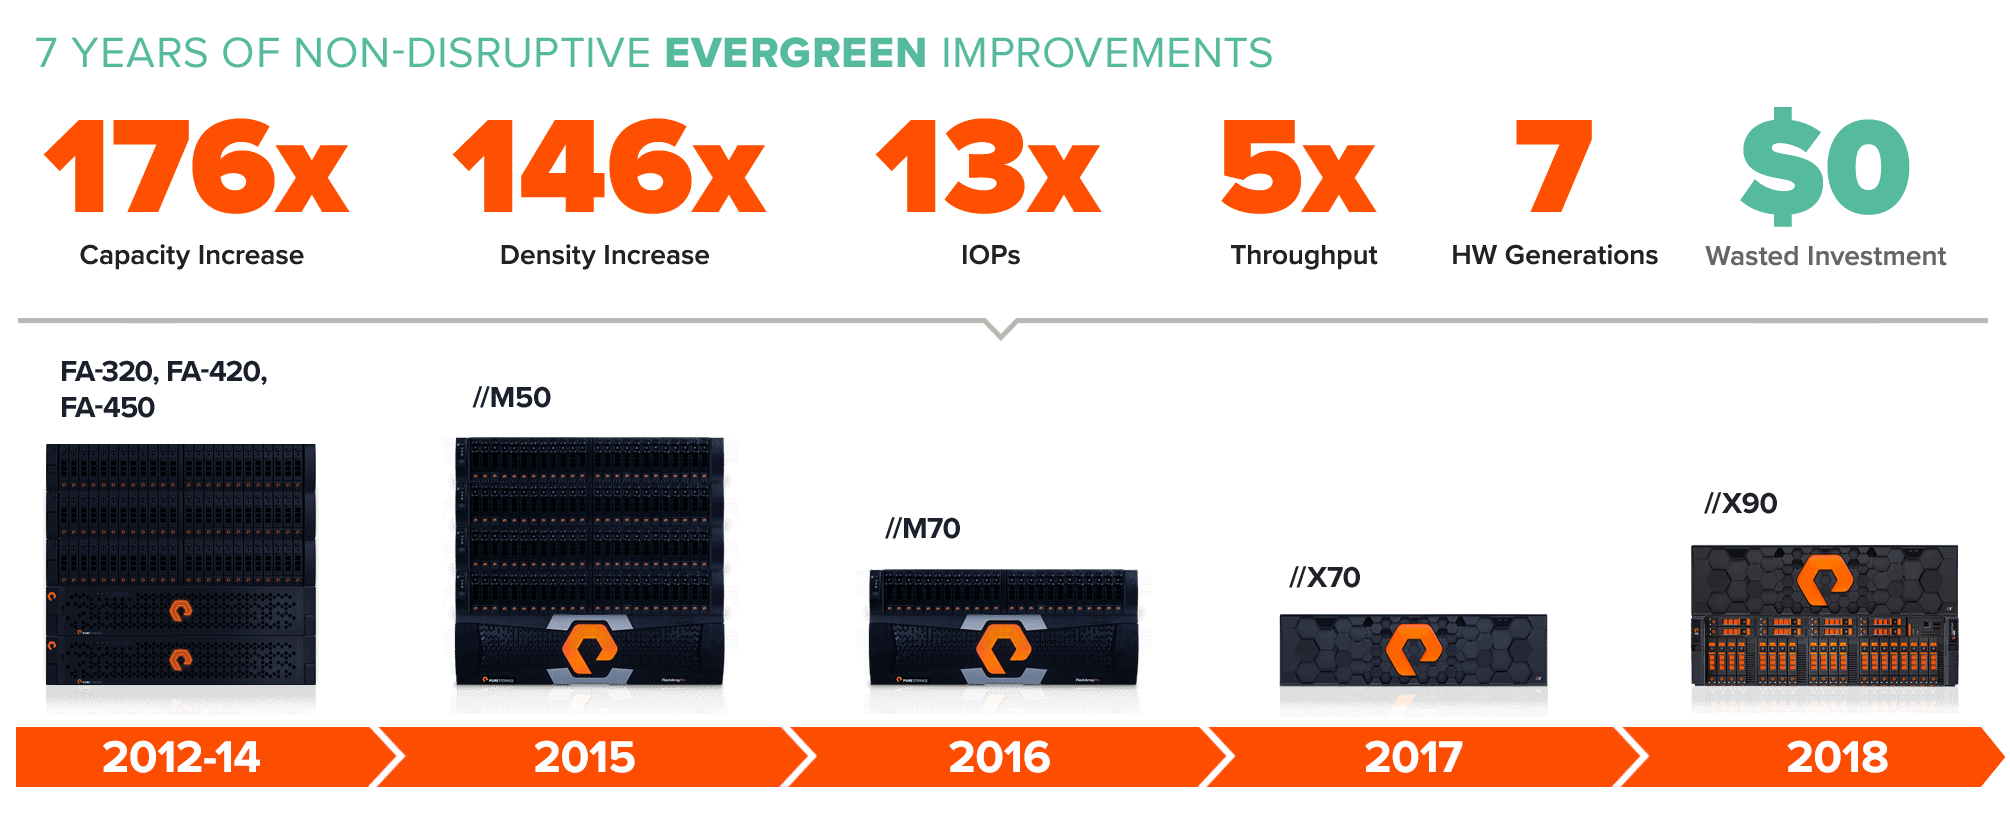 Evergreen Storage Program Delivers Non-Disruptive Upgrades